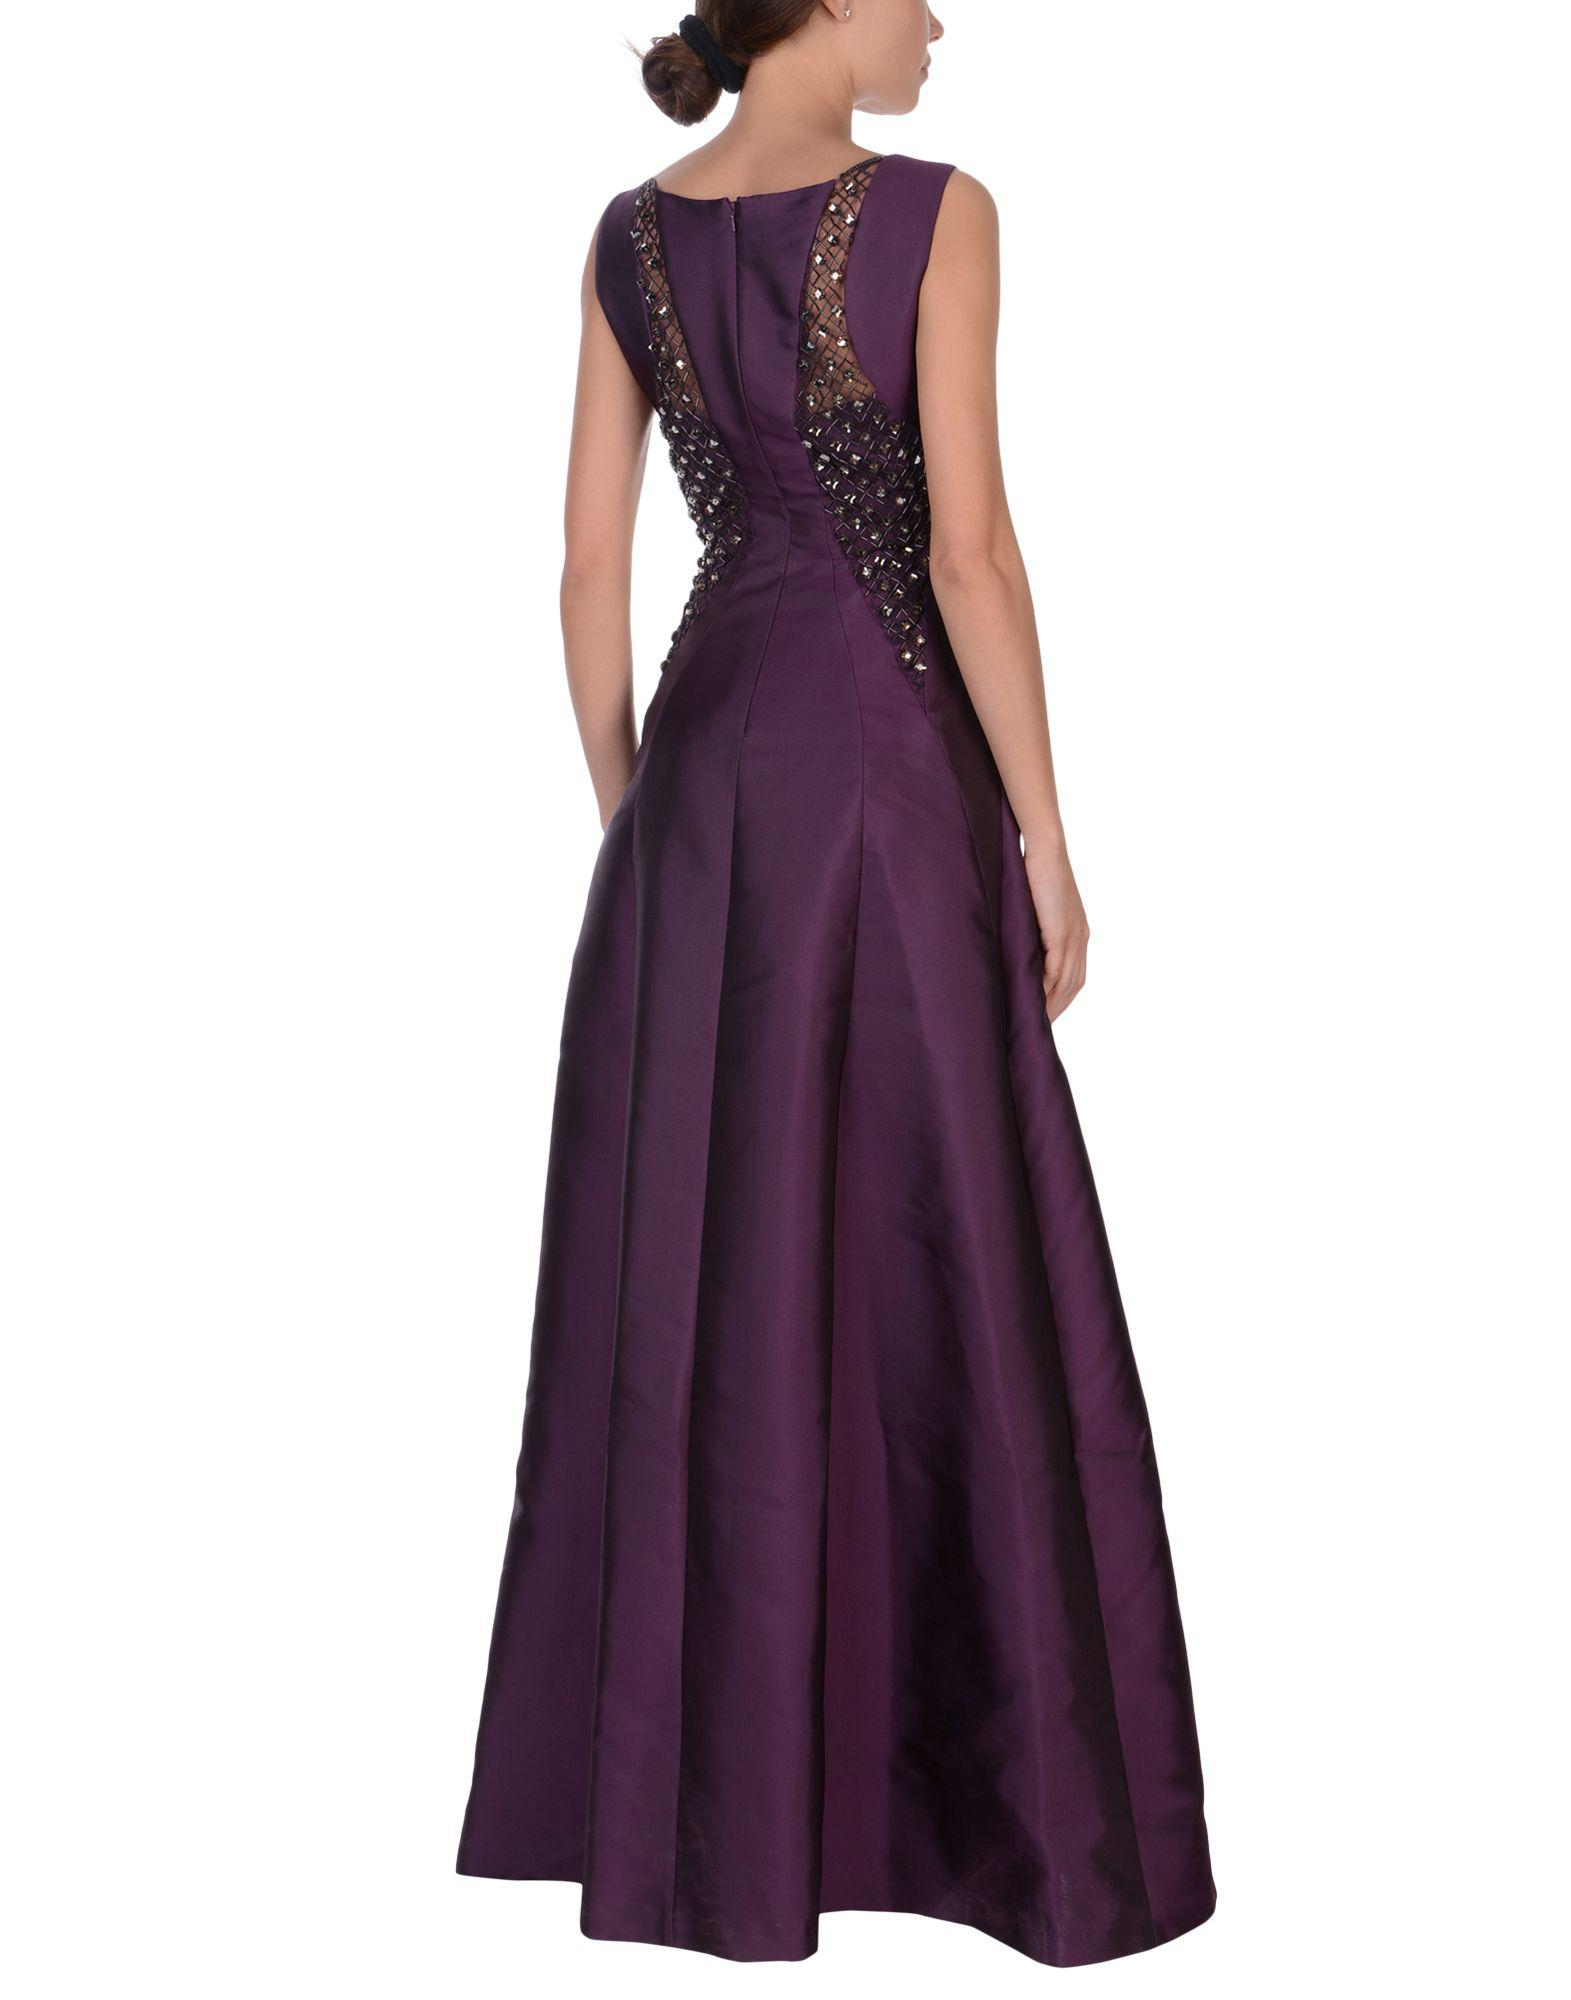 Alberta Ferretti Tulle Long Dress in Dark Purple (Purple)